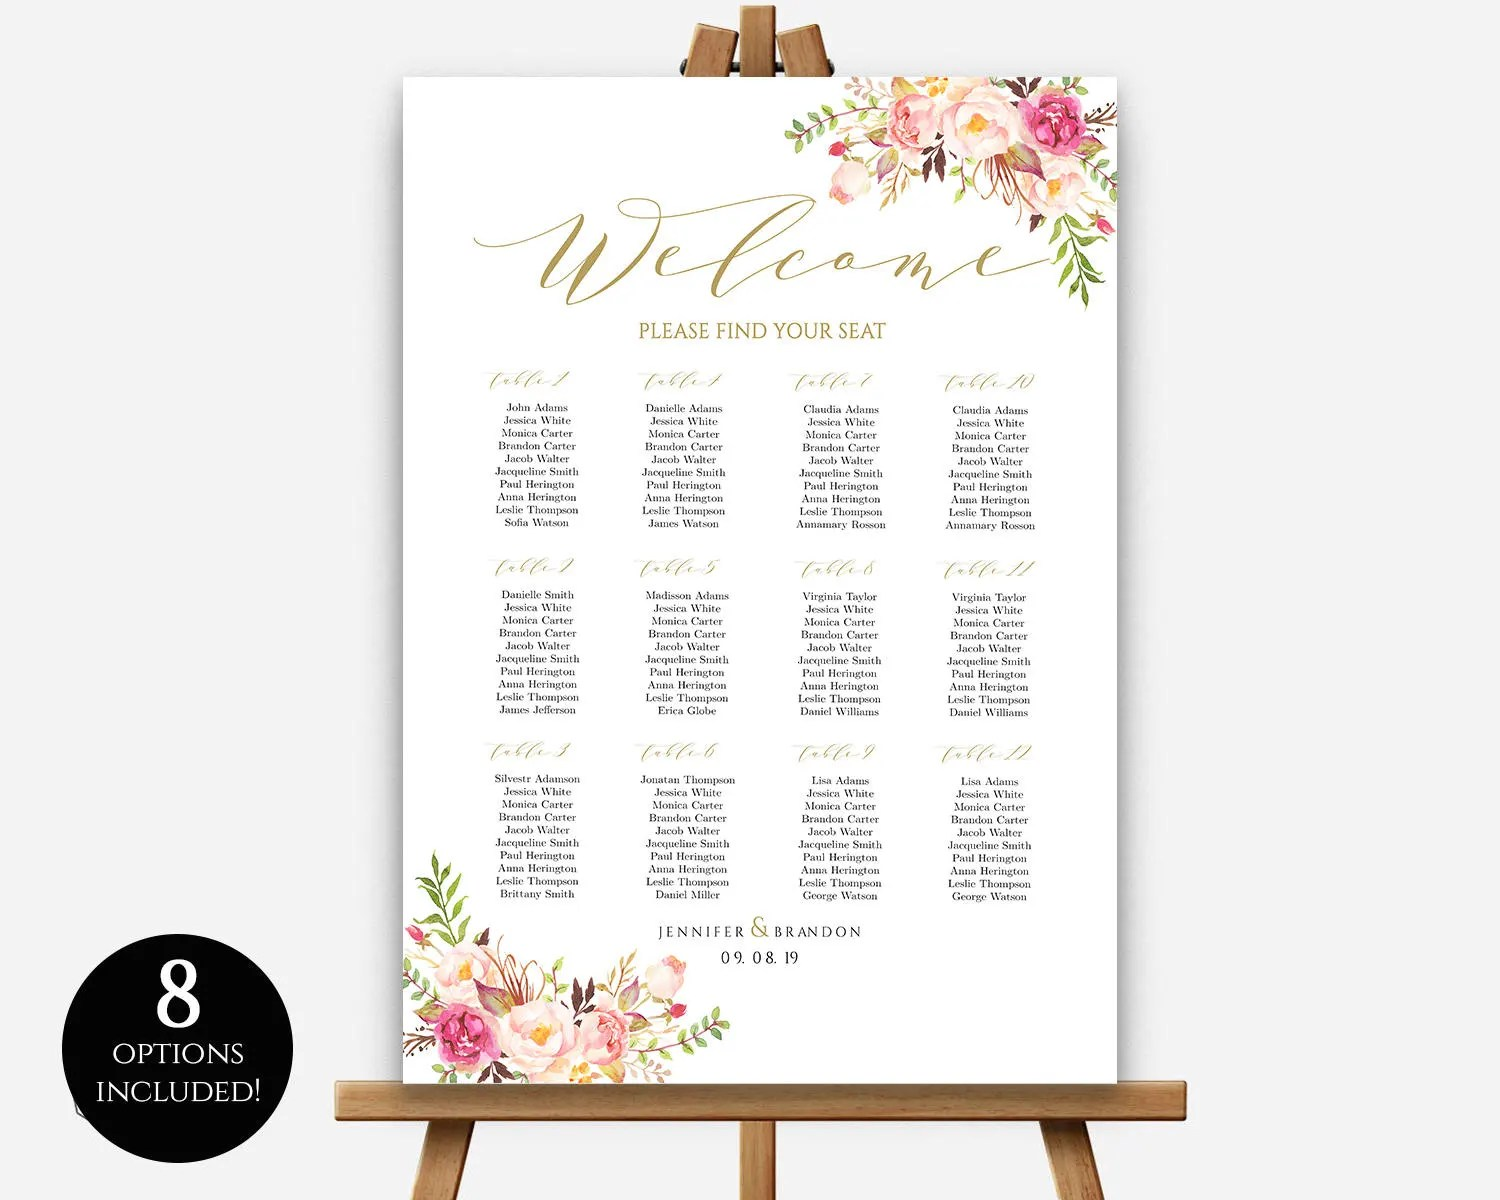 sizes wedding seating chart template editable table poster pdf instant download find your seat board also etsy rh